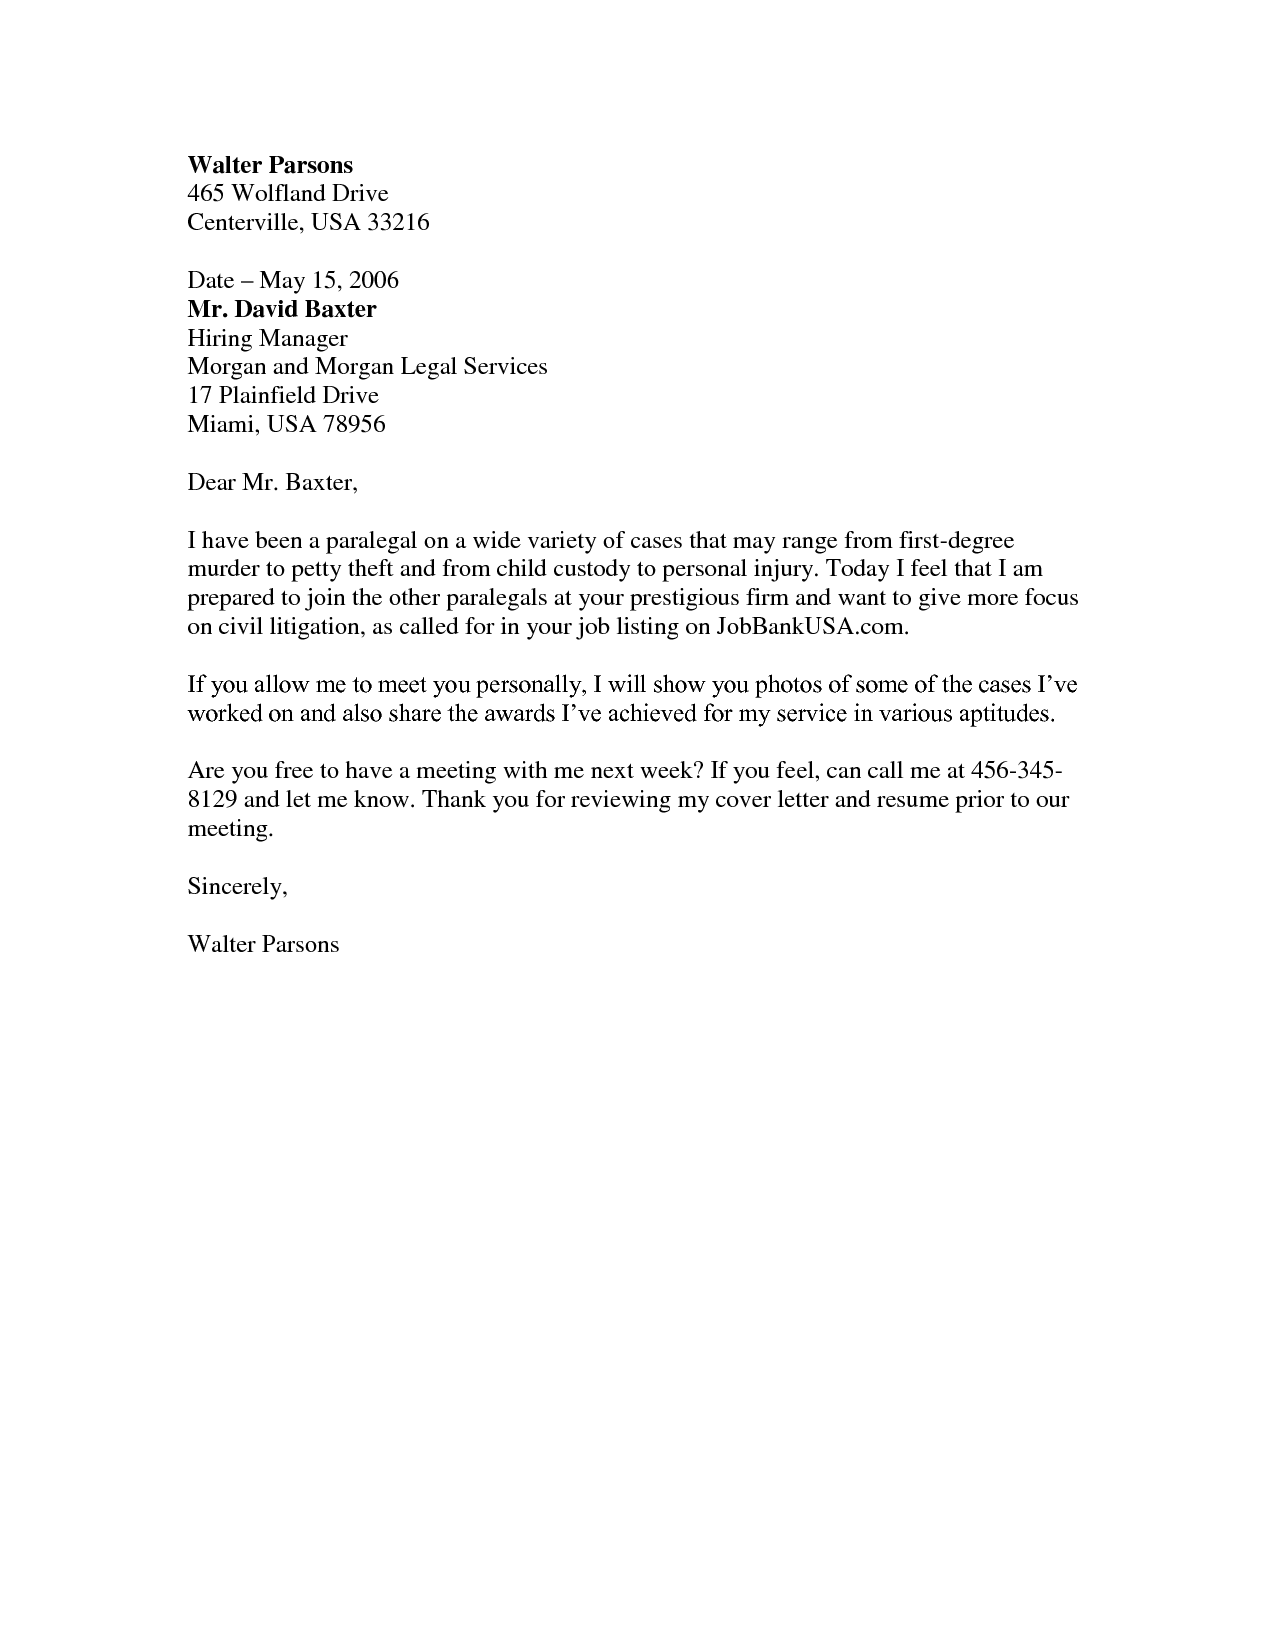 paralegal job cover letter sample - Google Search | Funemployment ...